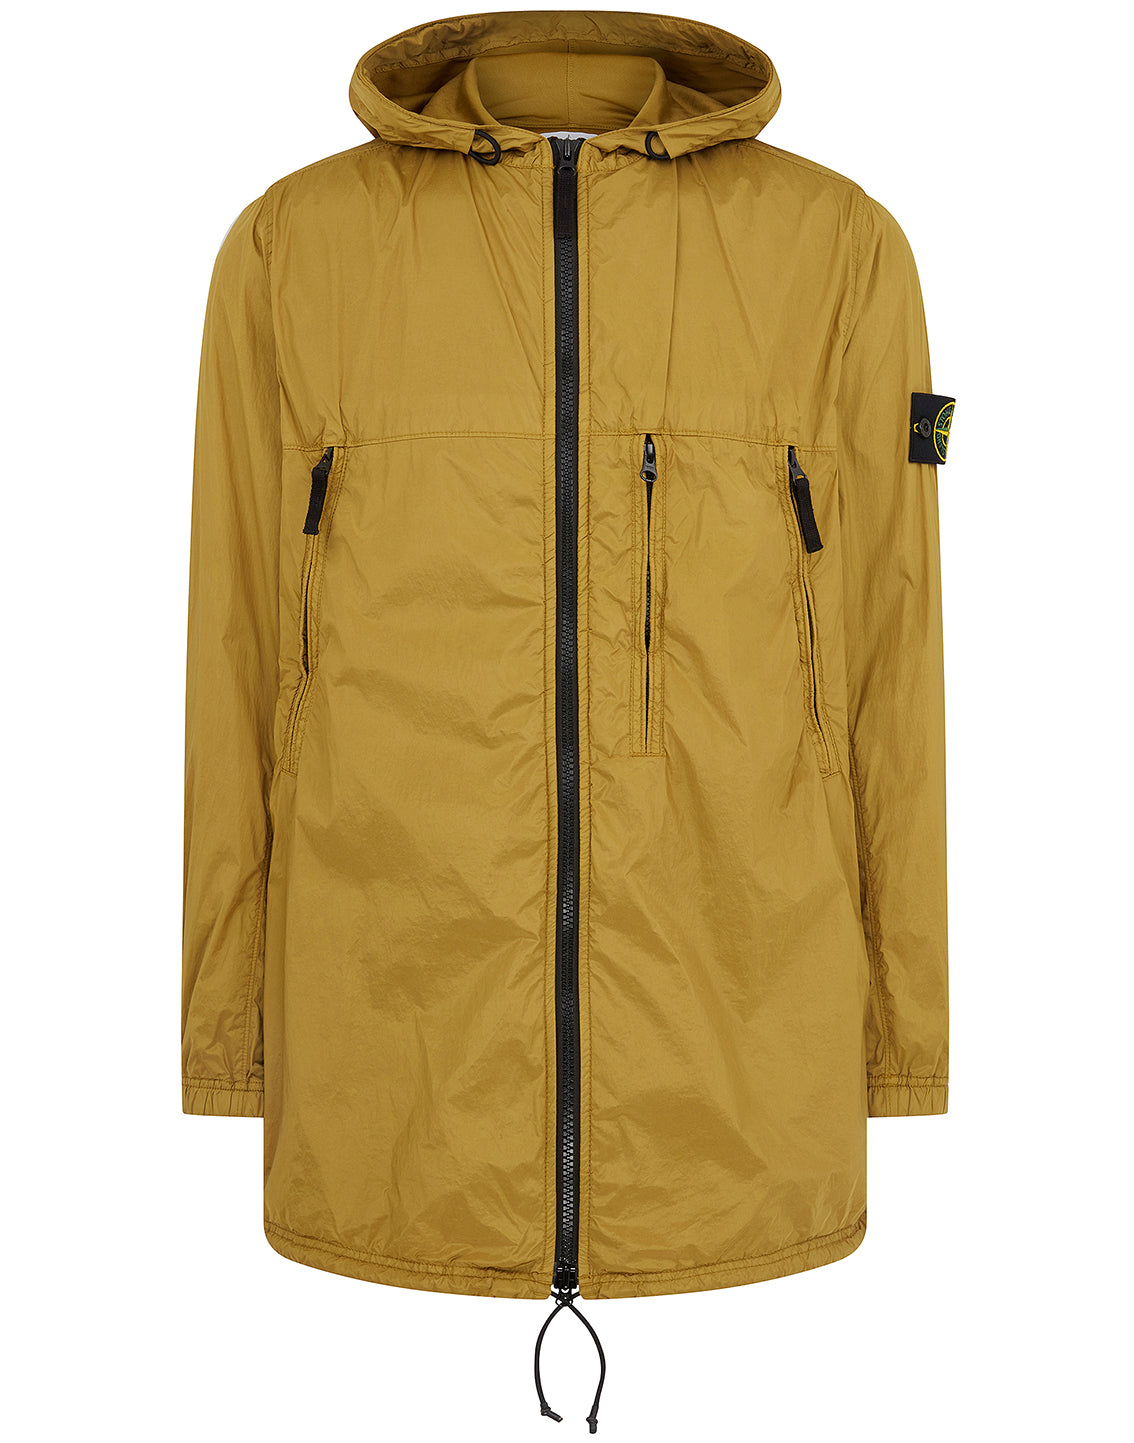 Q0523 Garment Dyed Crinkle Reps NY + Rete Isolante-TC Jacket in Mustard